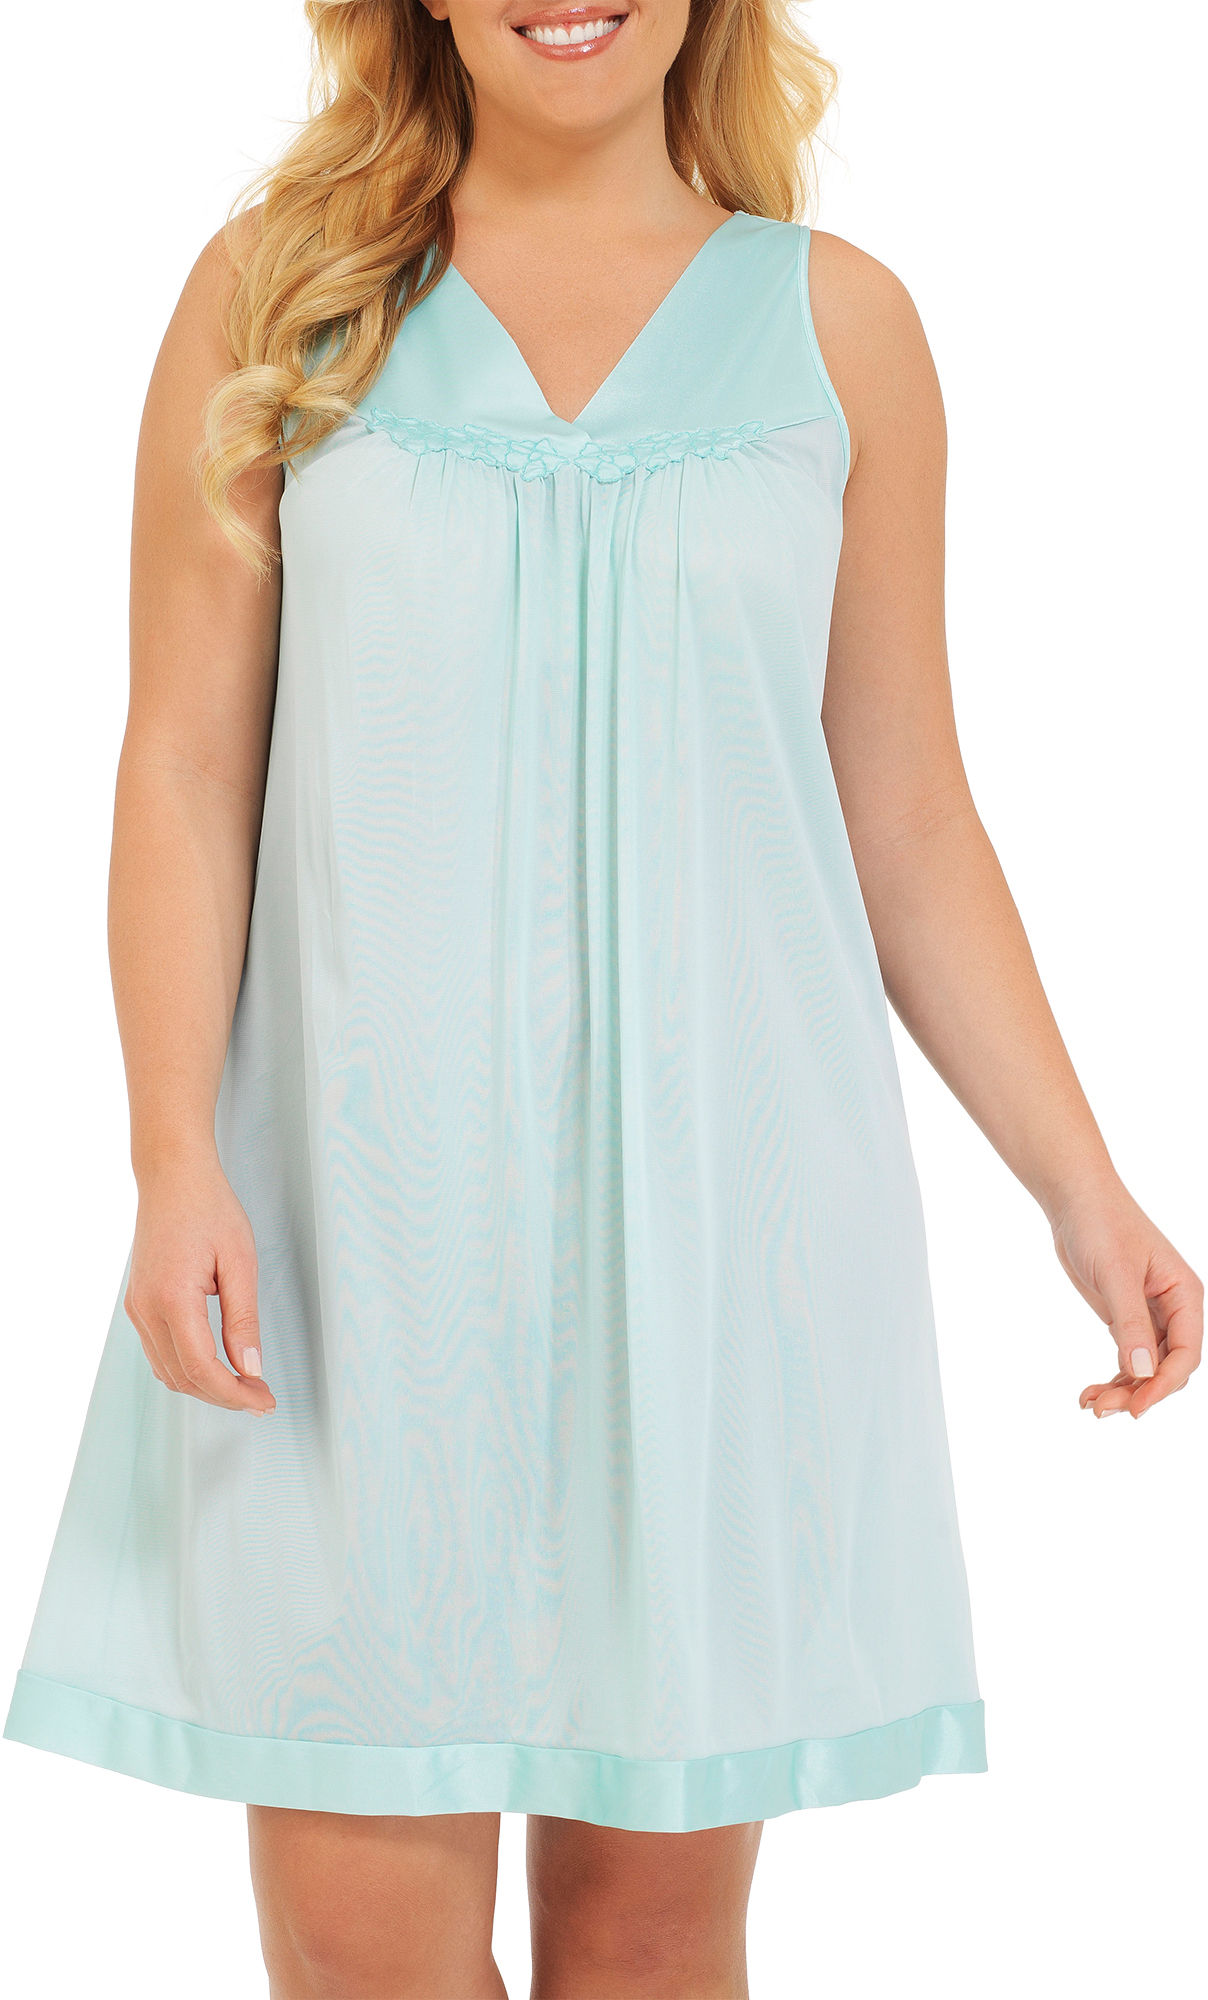 Vanity Fair Sleeveless Nightgown